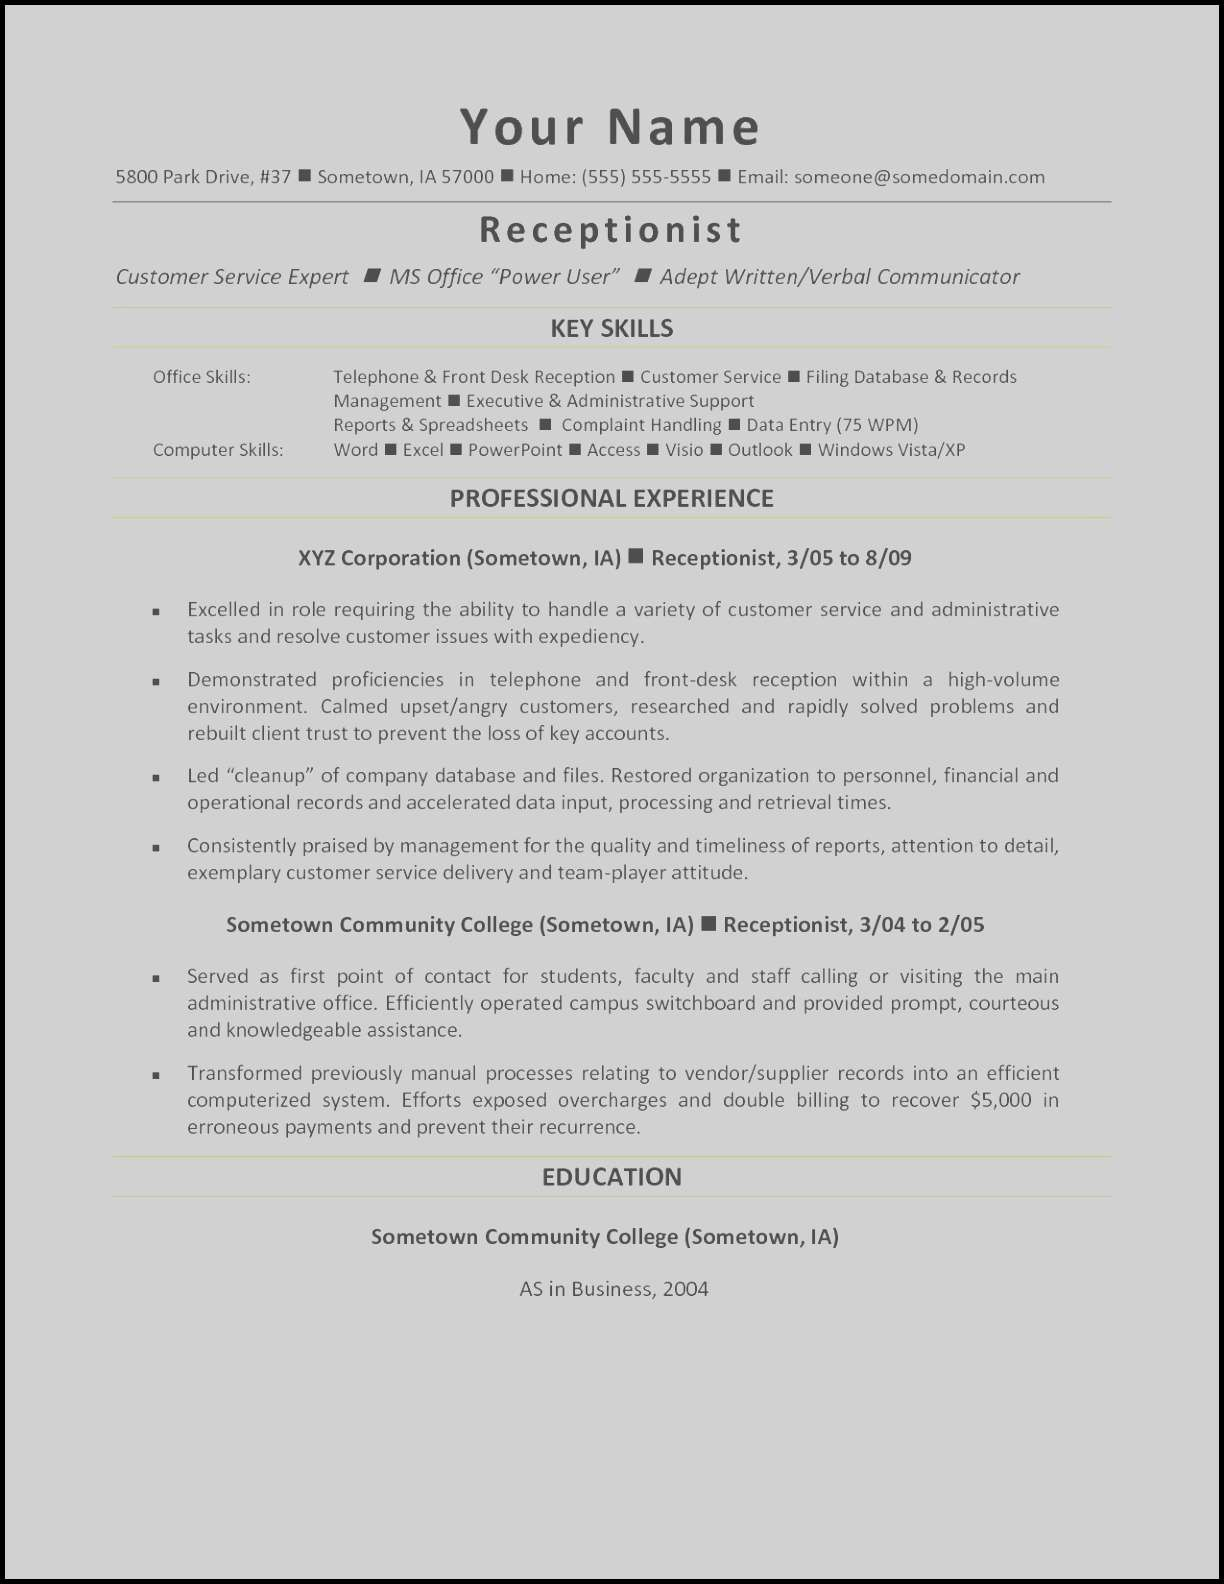 Sample Editor Resume - Copy Editor Resume Unique Sample Copy A Resume Email Cover Letter